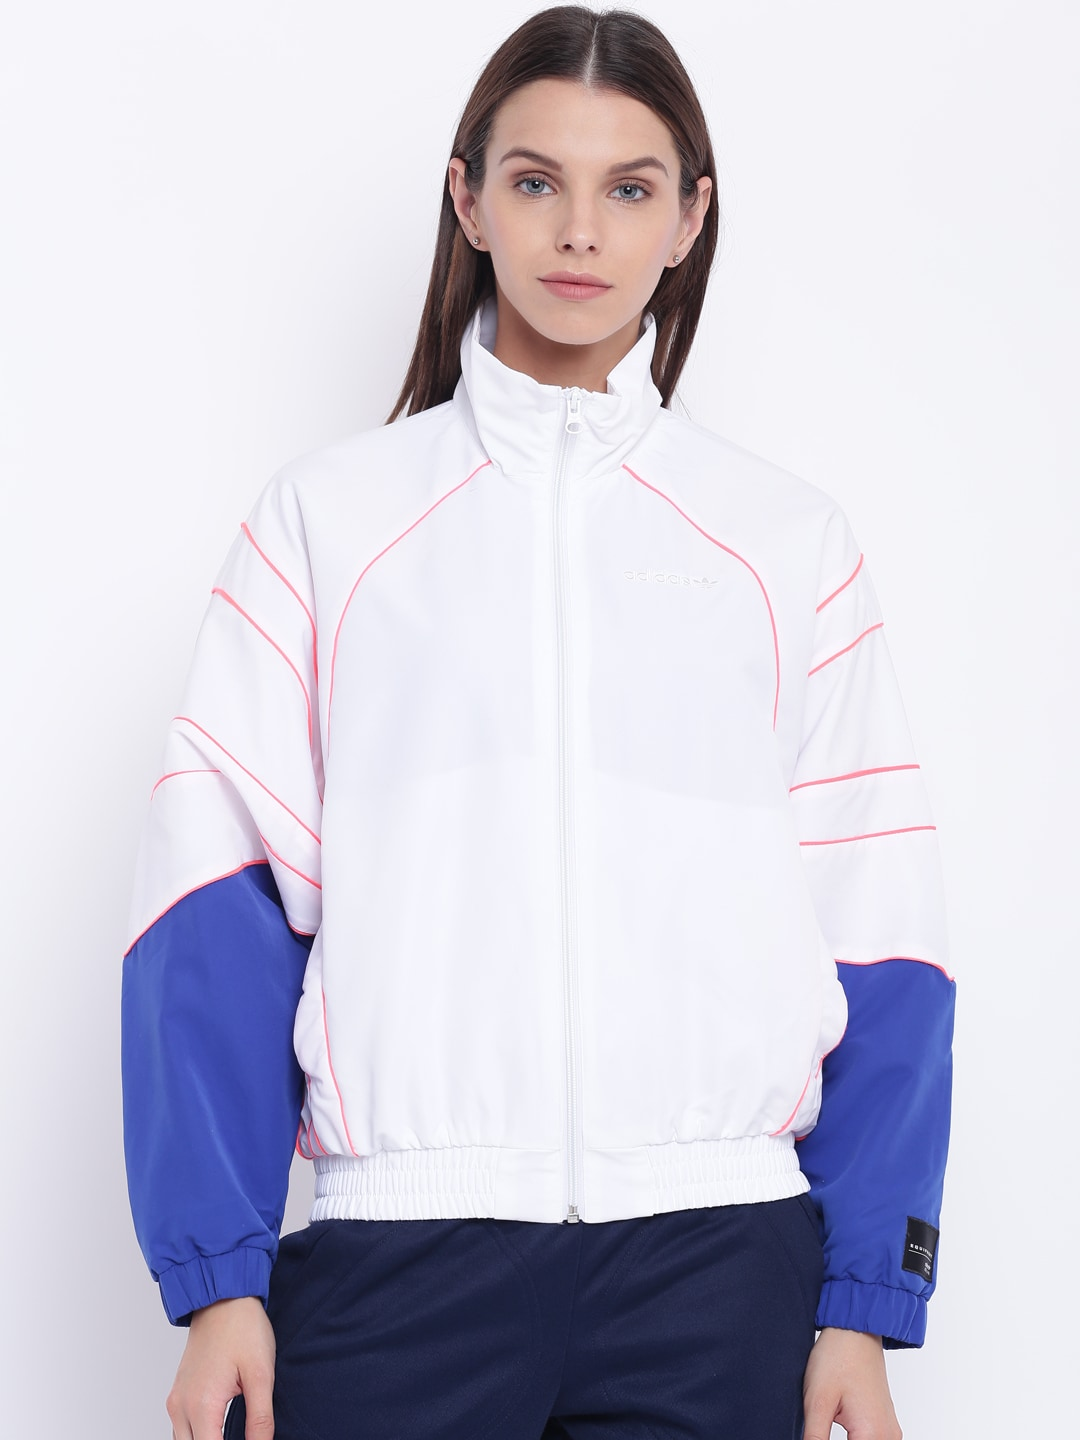 new style 2a1f8 35353 Adidas Jacket - Buy Adidas Jackets for Men, Women   Kids Online